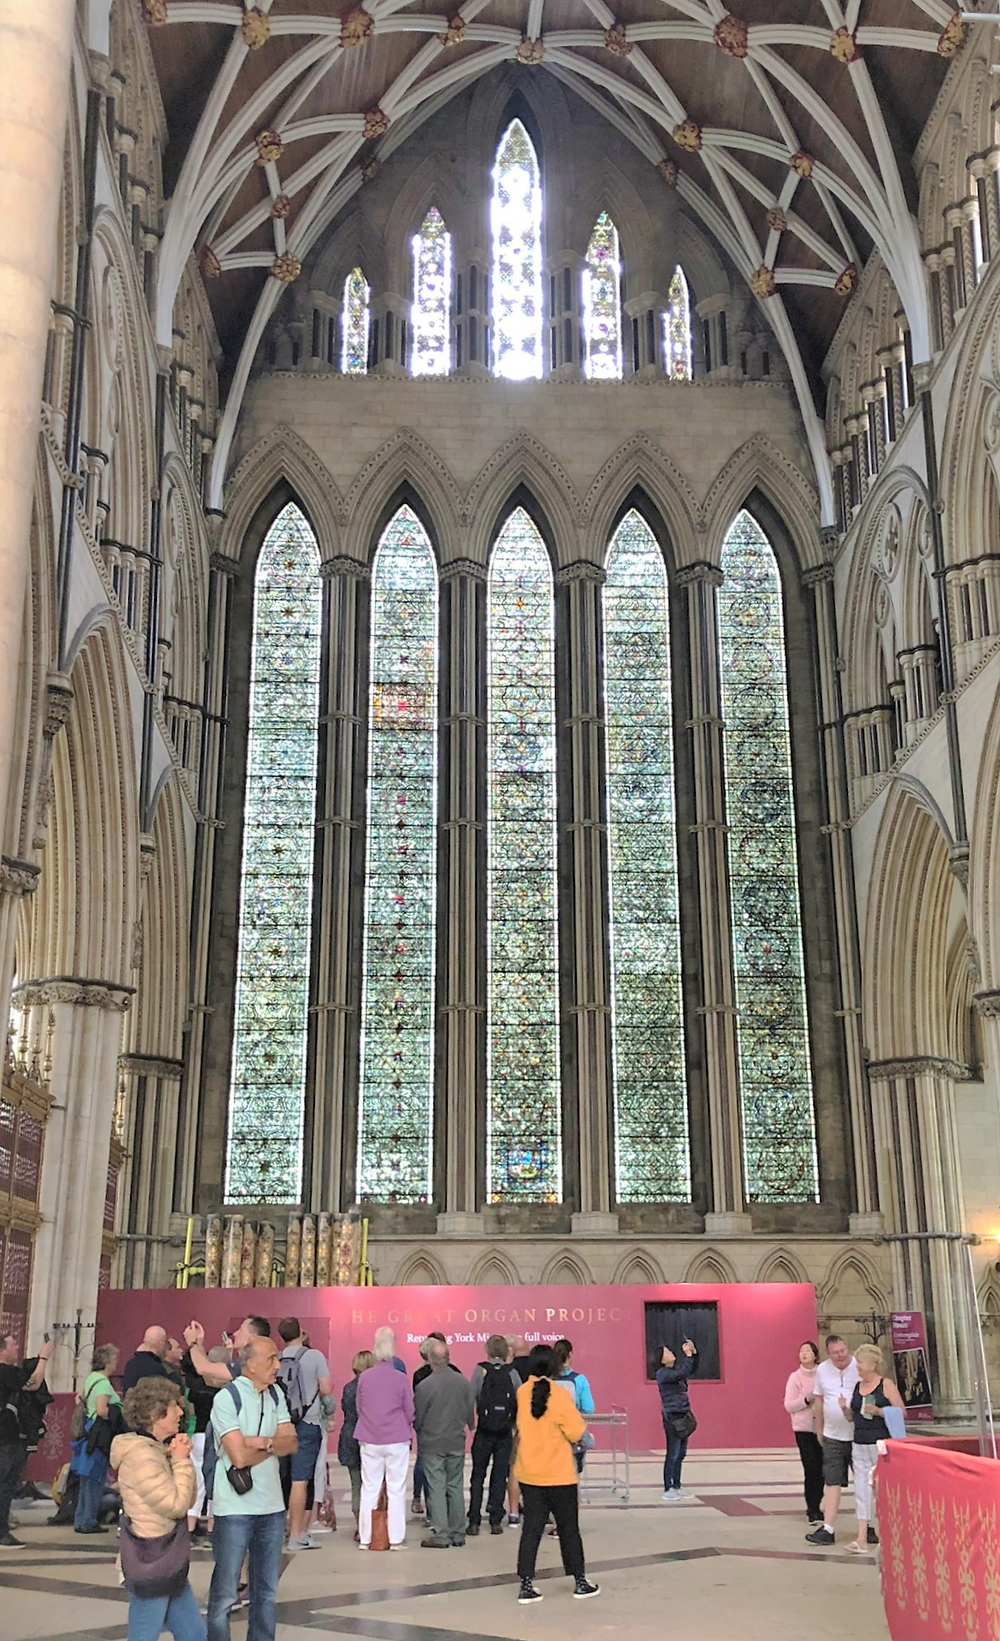 In the North Transept is the Five Sisters Window. It is the oldest complete window in York Minster and dates from around the year 1260